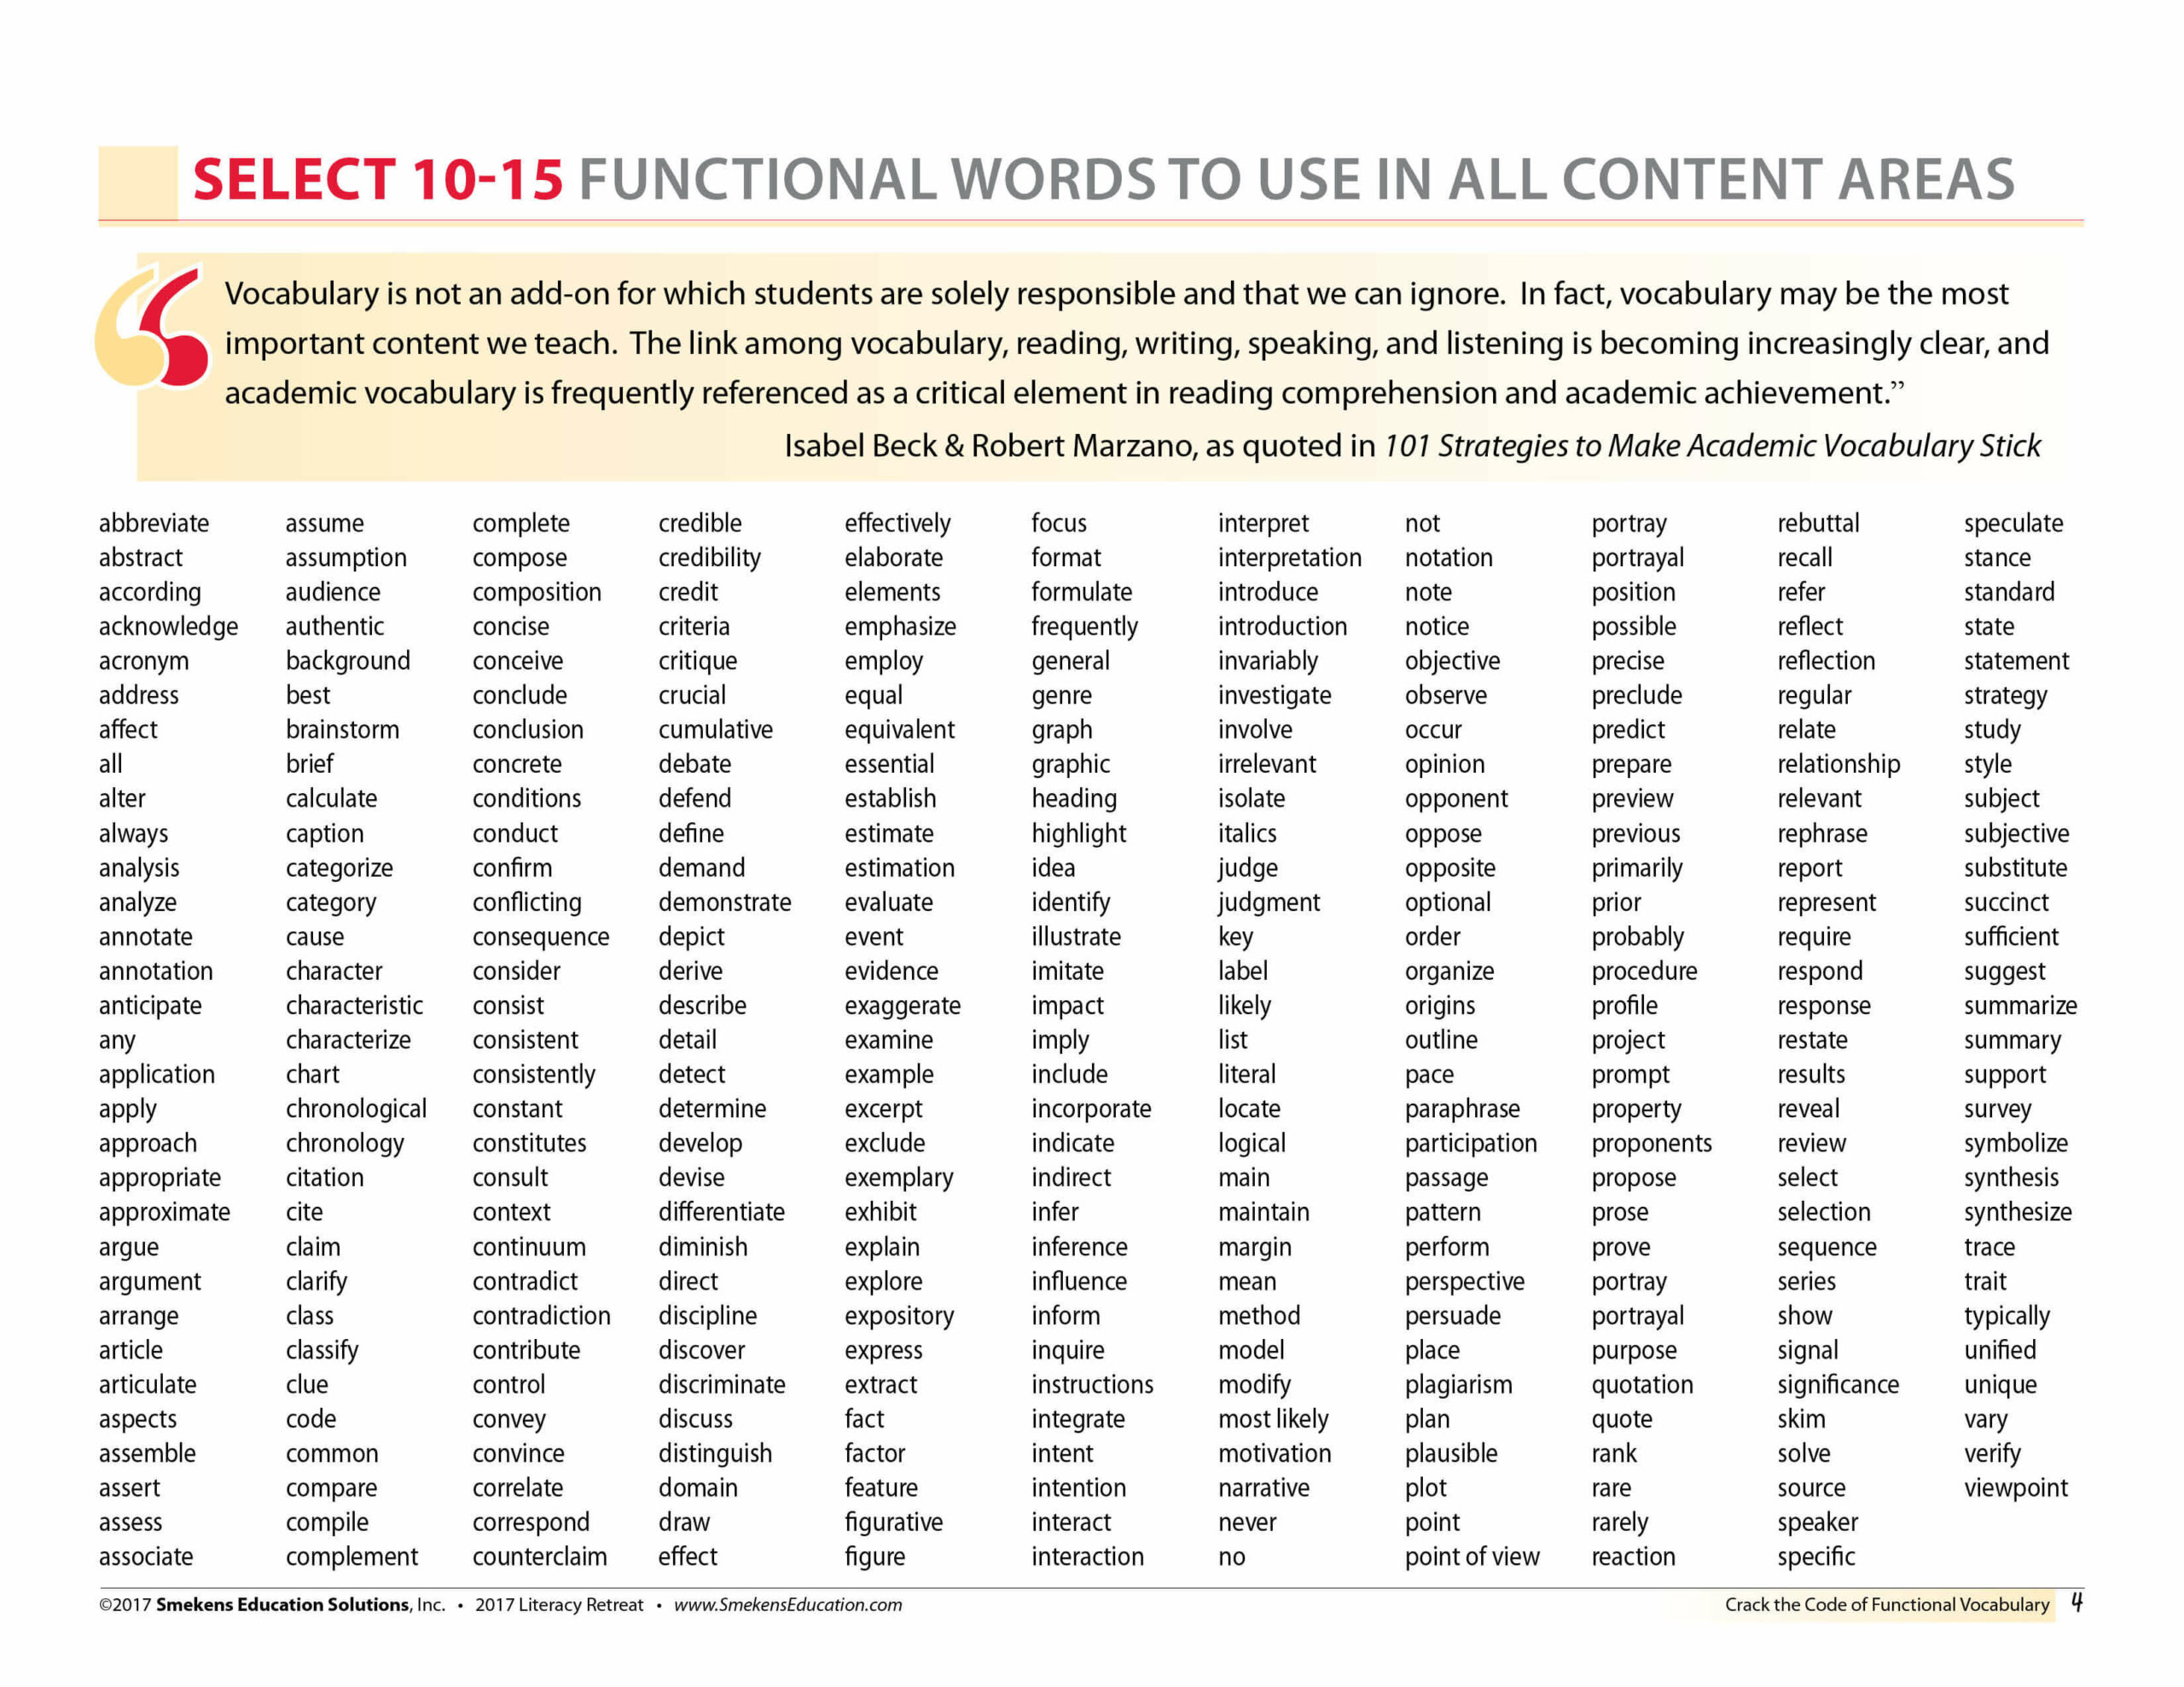 Select 10-15 Functional Words to use in all Content Areas